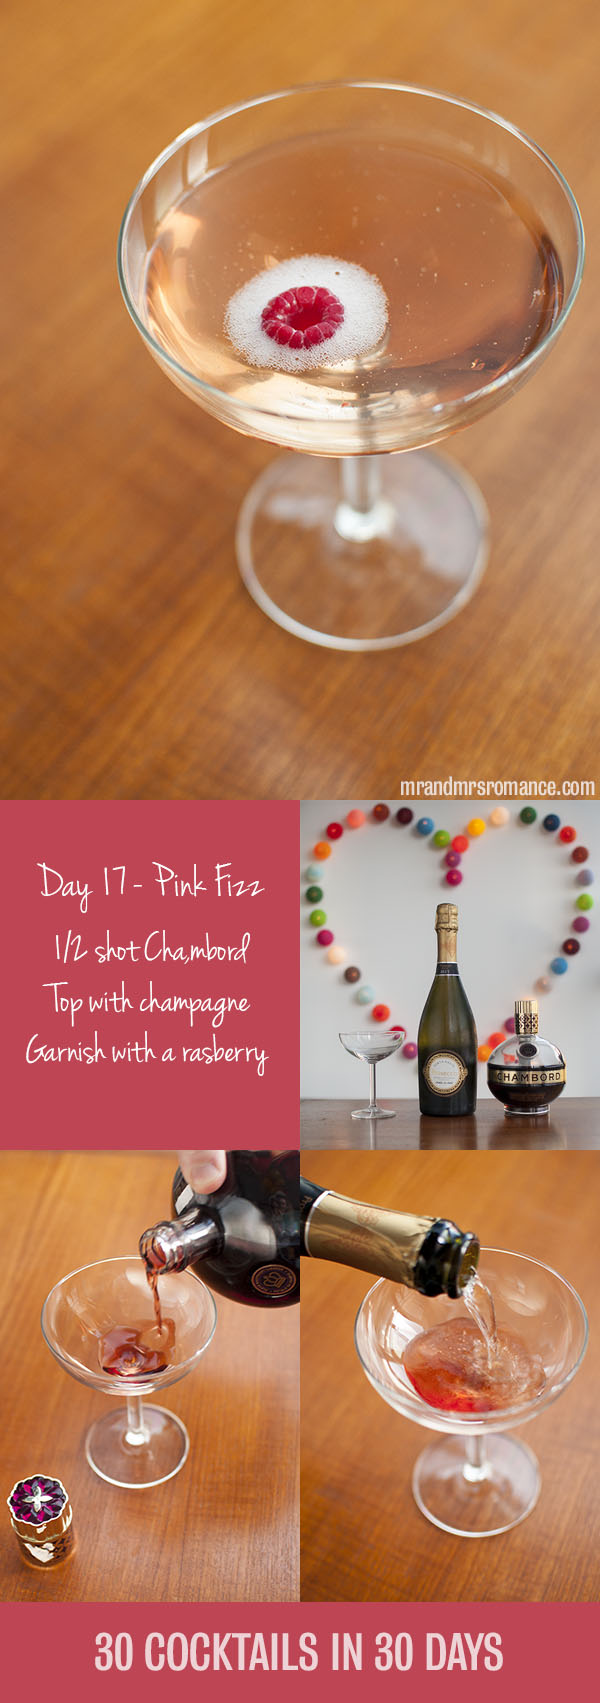 Mr and Mrs Romance - Day 17 - Chambord Pink Fizz Champagne Cocktail Recipe